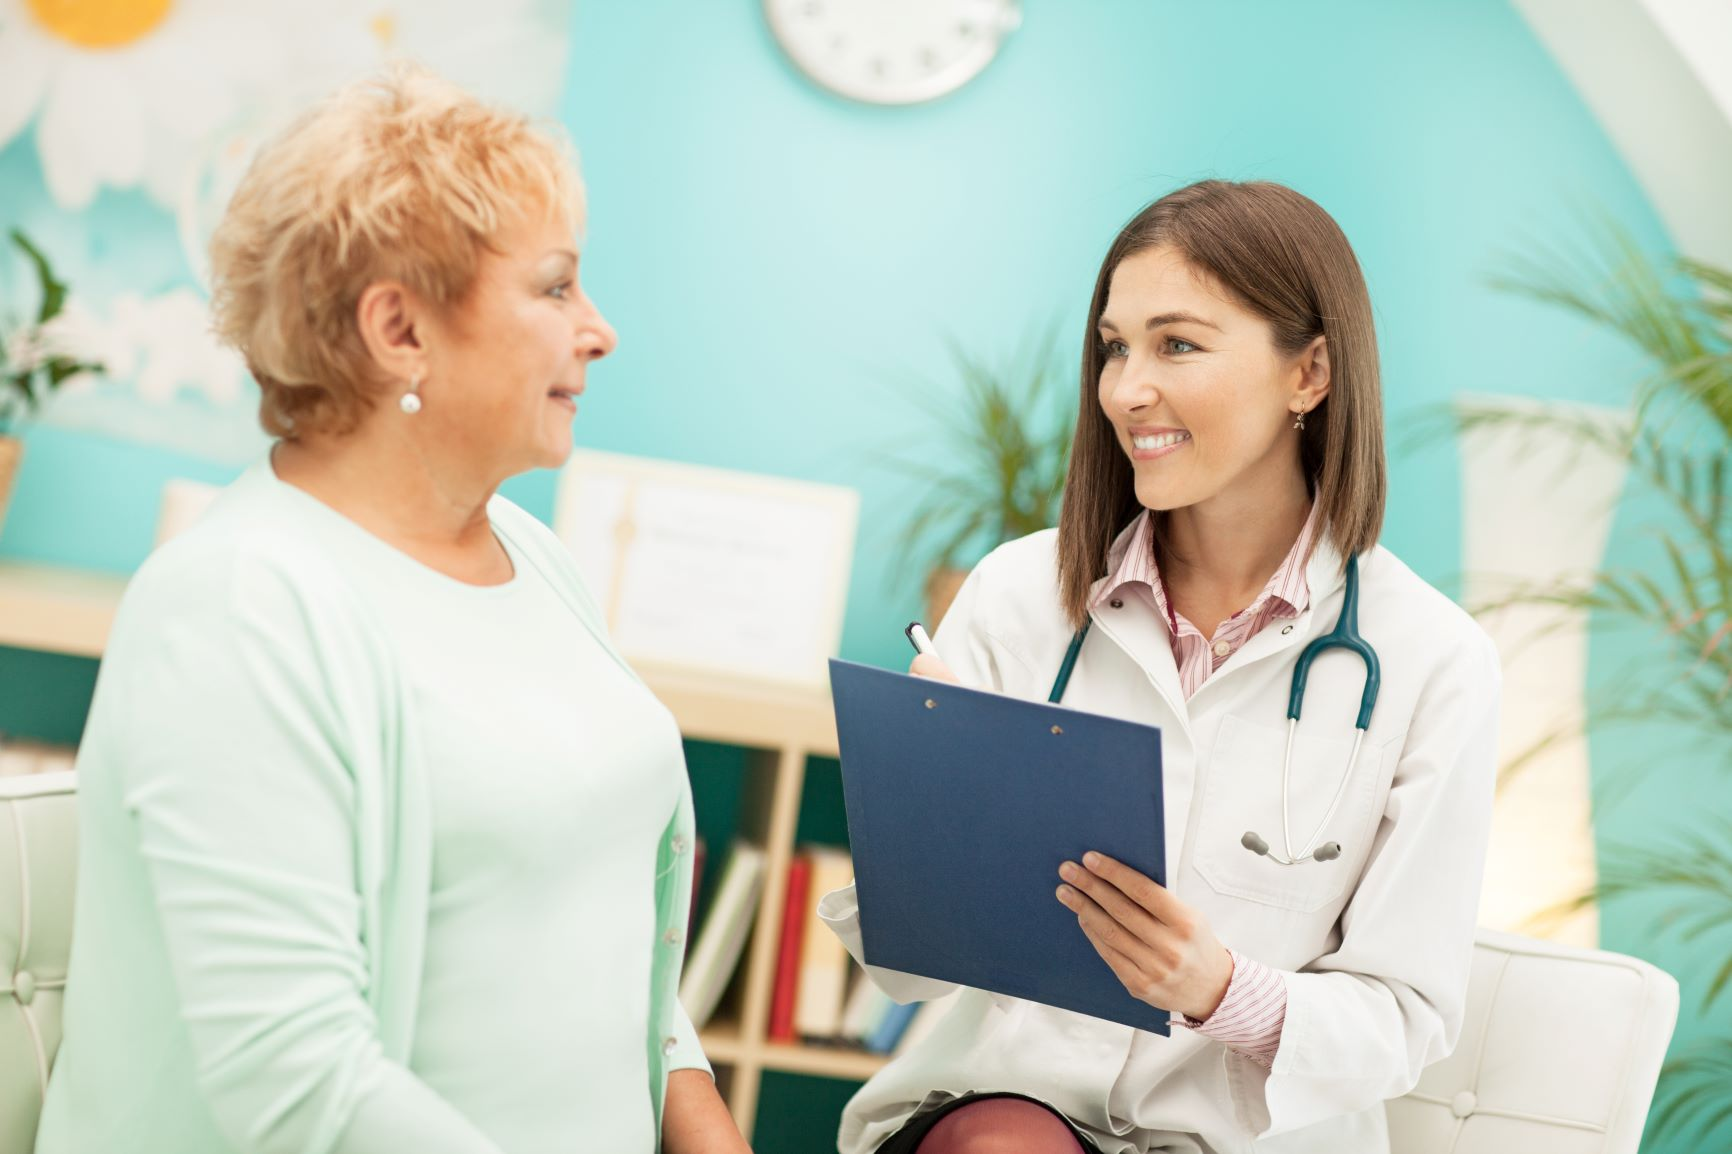 woman and medical provider in a consultation